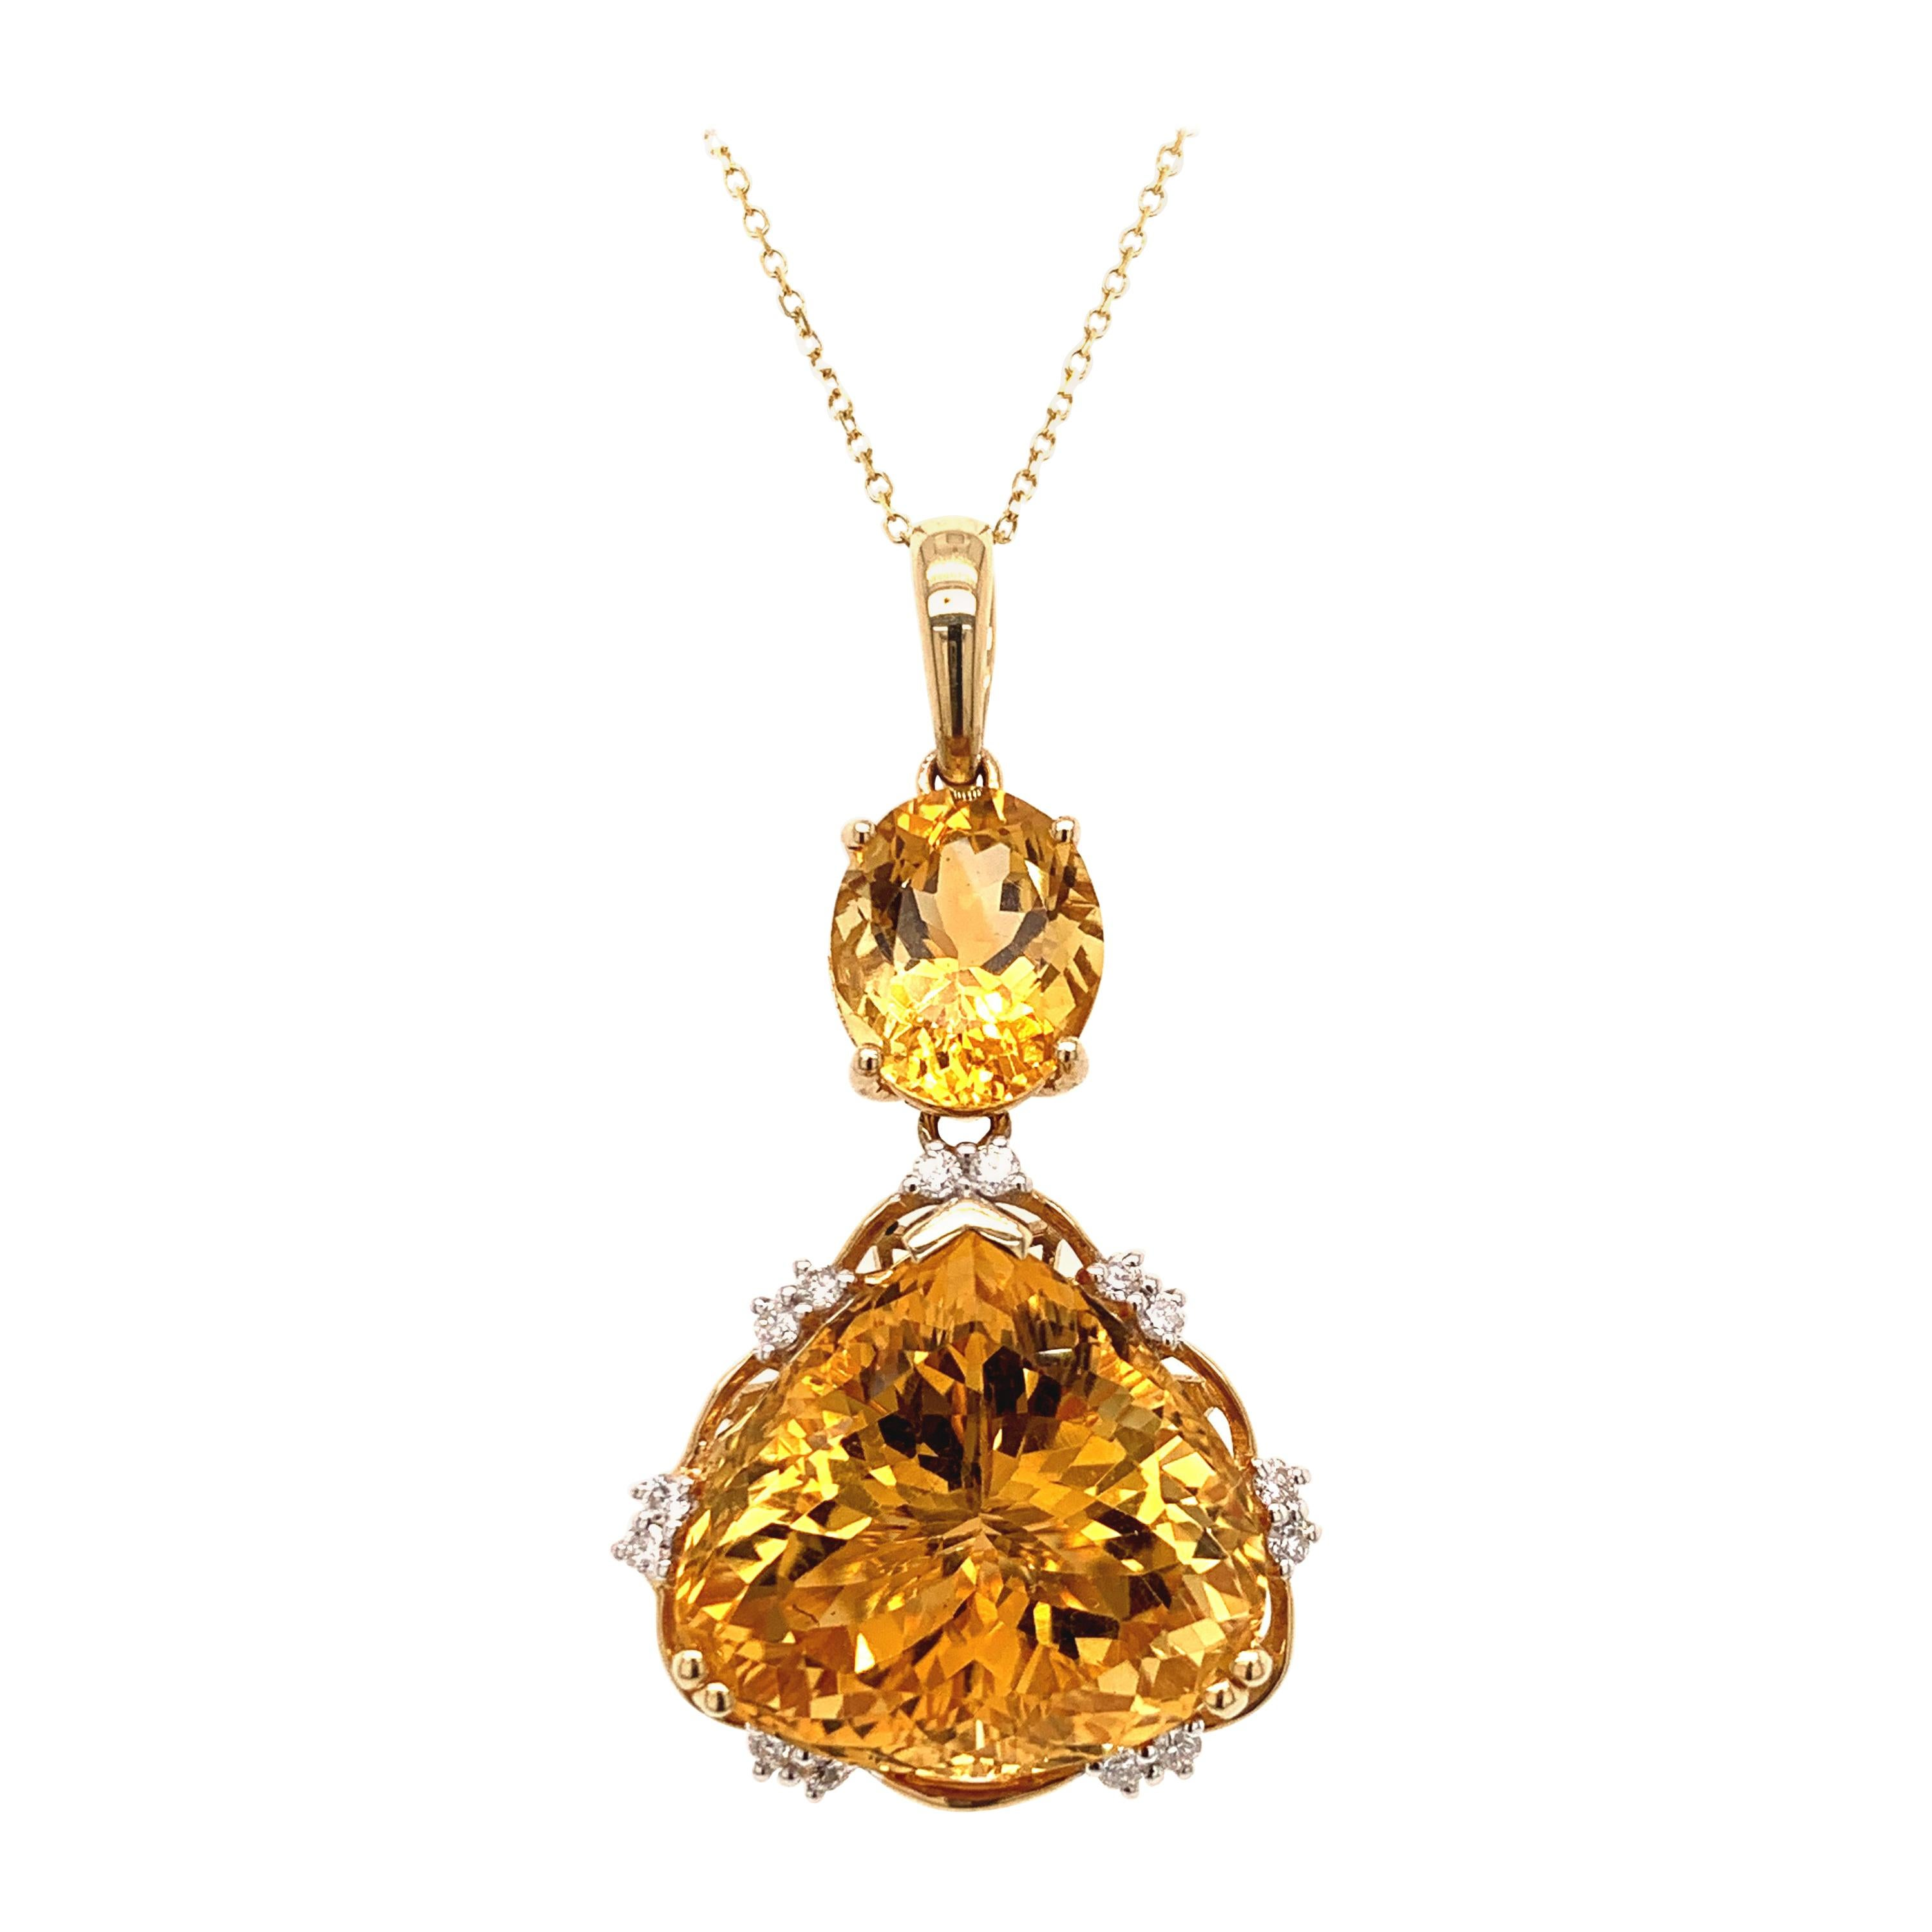 21.08 Carat Citrine Diamond Pendant Necklace